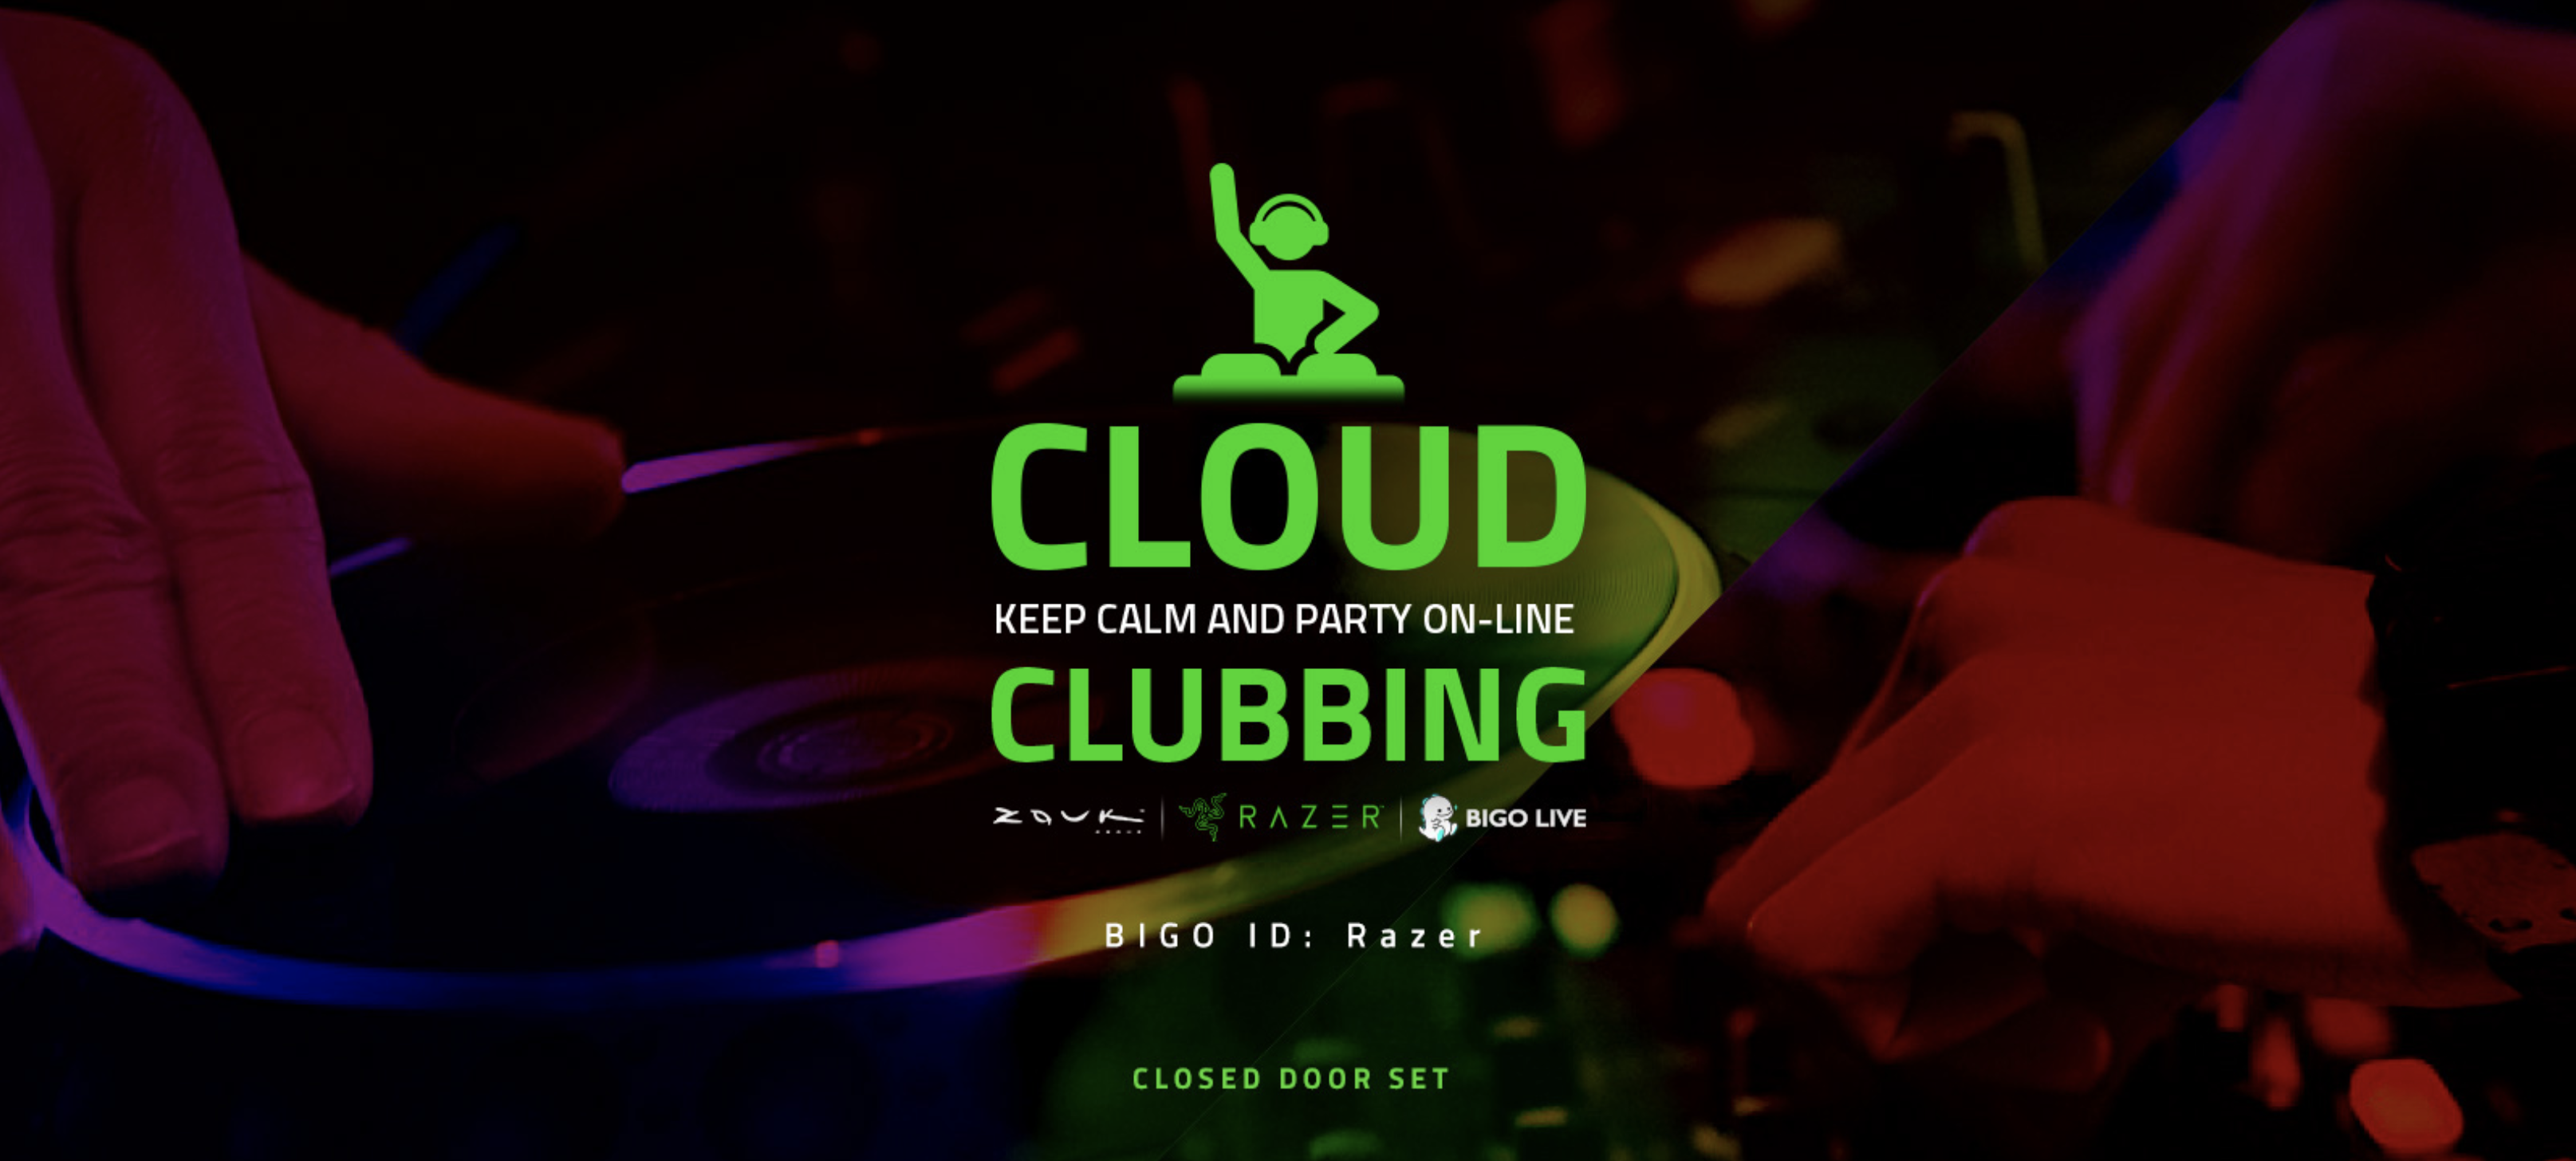 Razer Cloud Clubbing